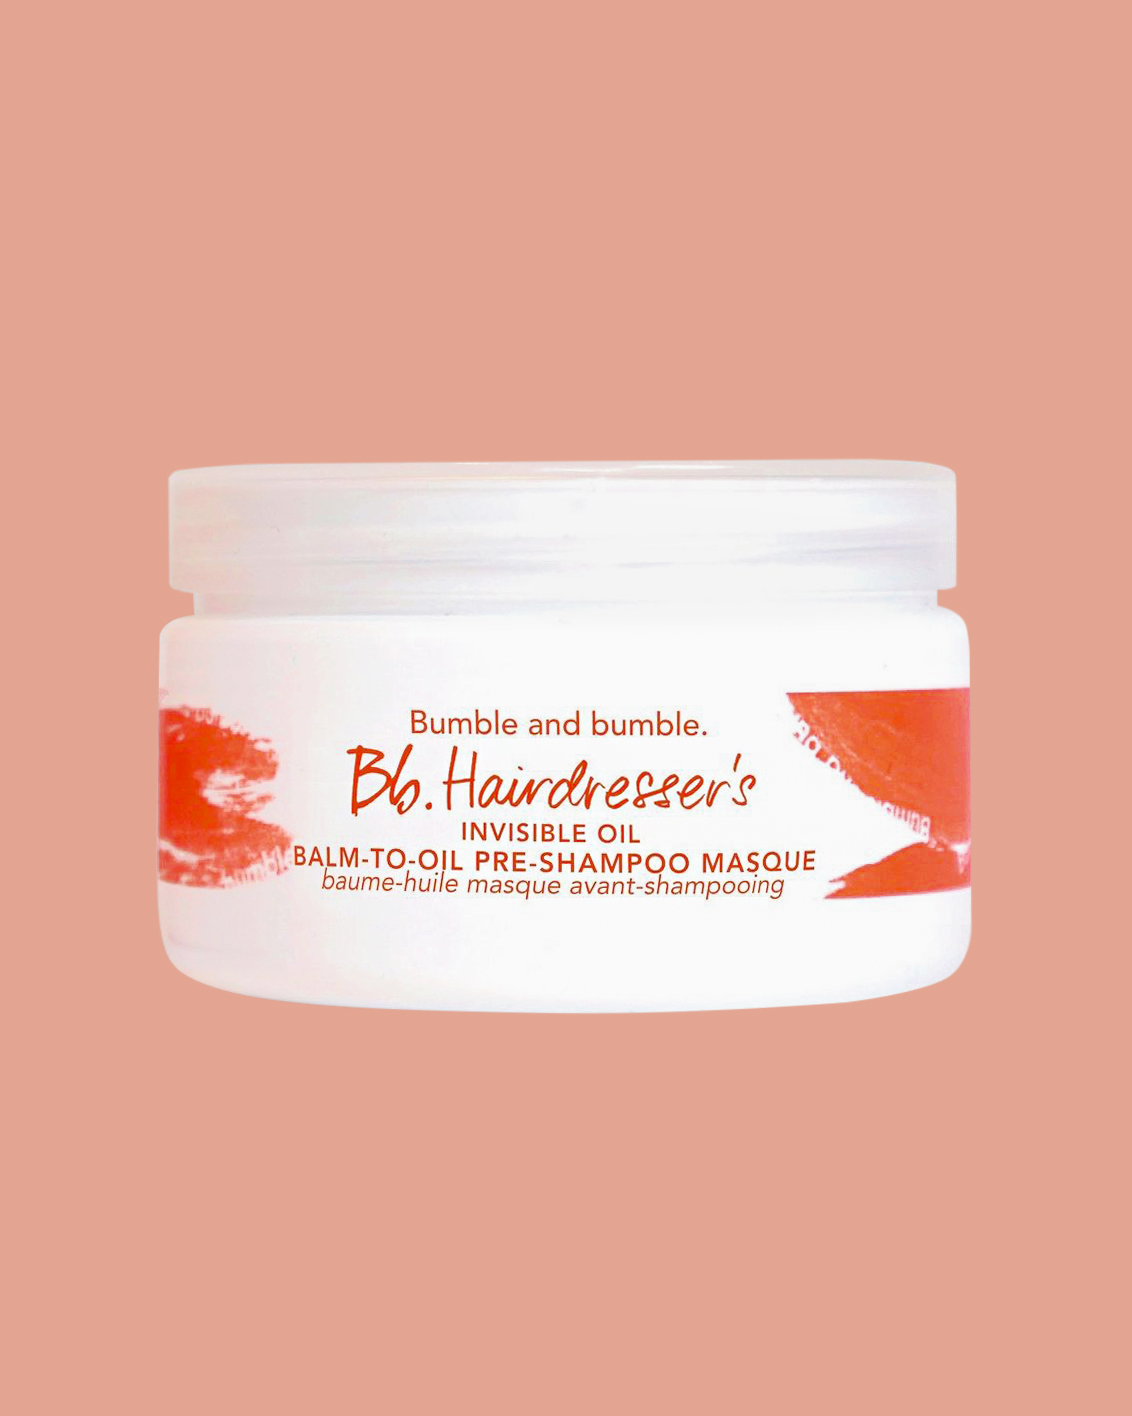 Bumble and Bumble Balm-to-Oil Pre Shampoo Masque